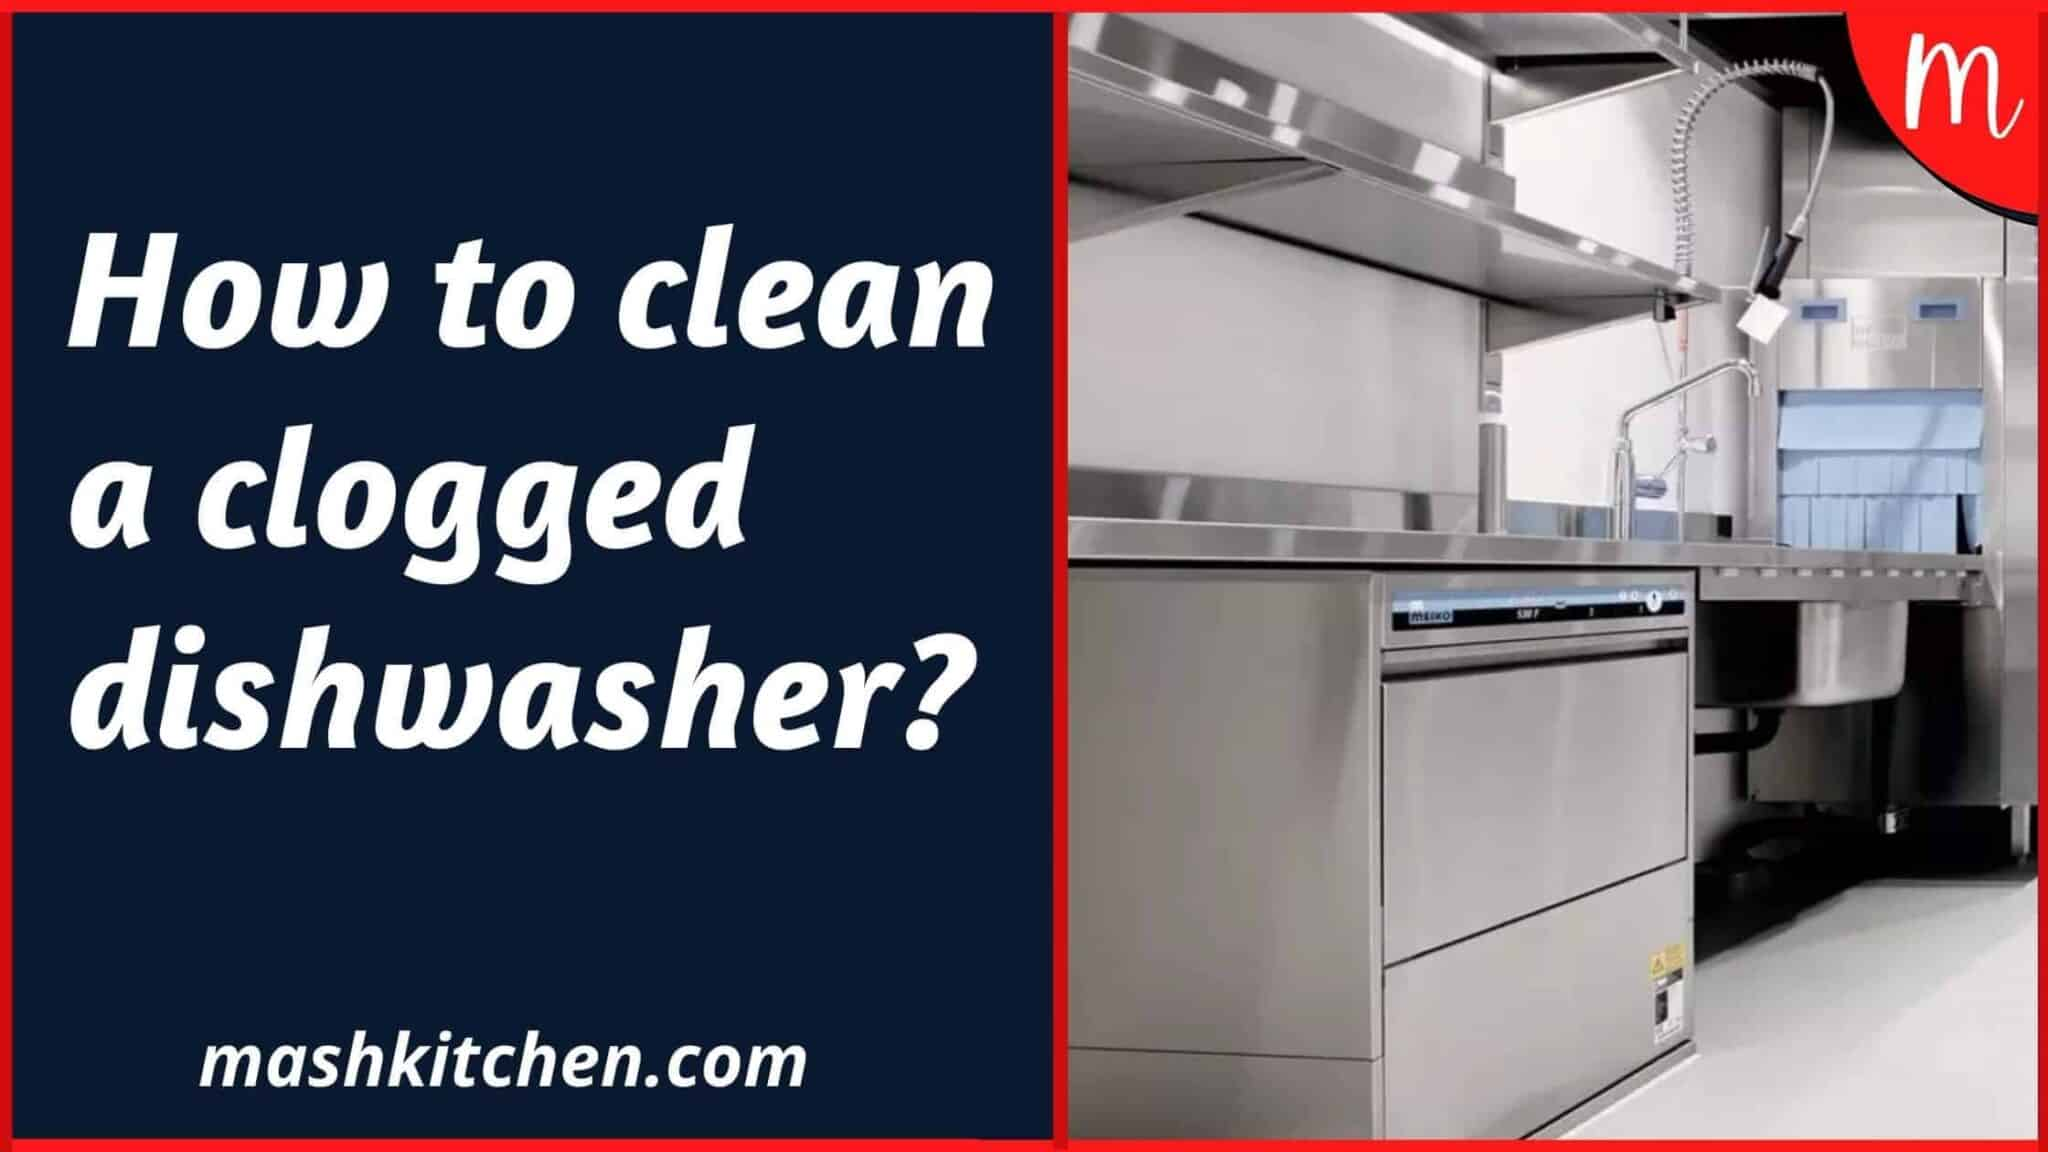 How to clean a clogged dishwasher